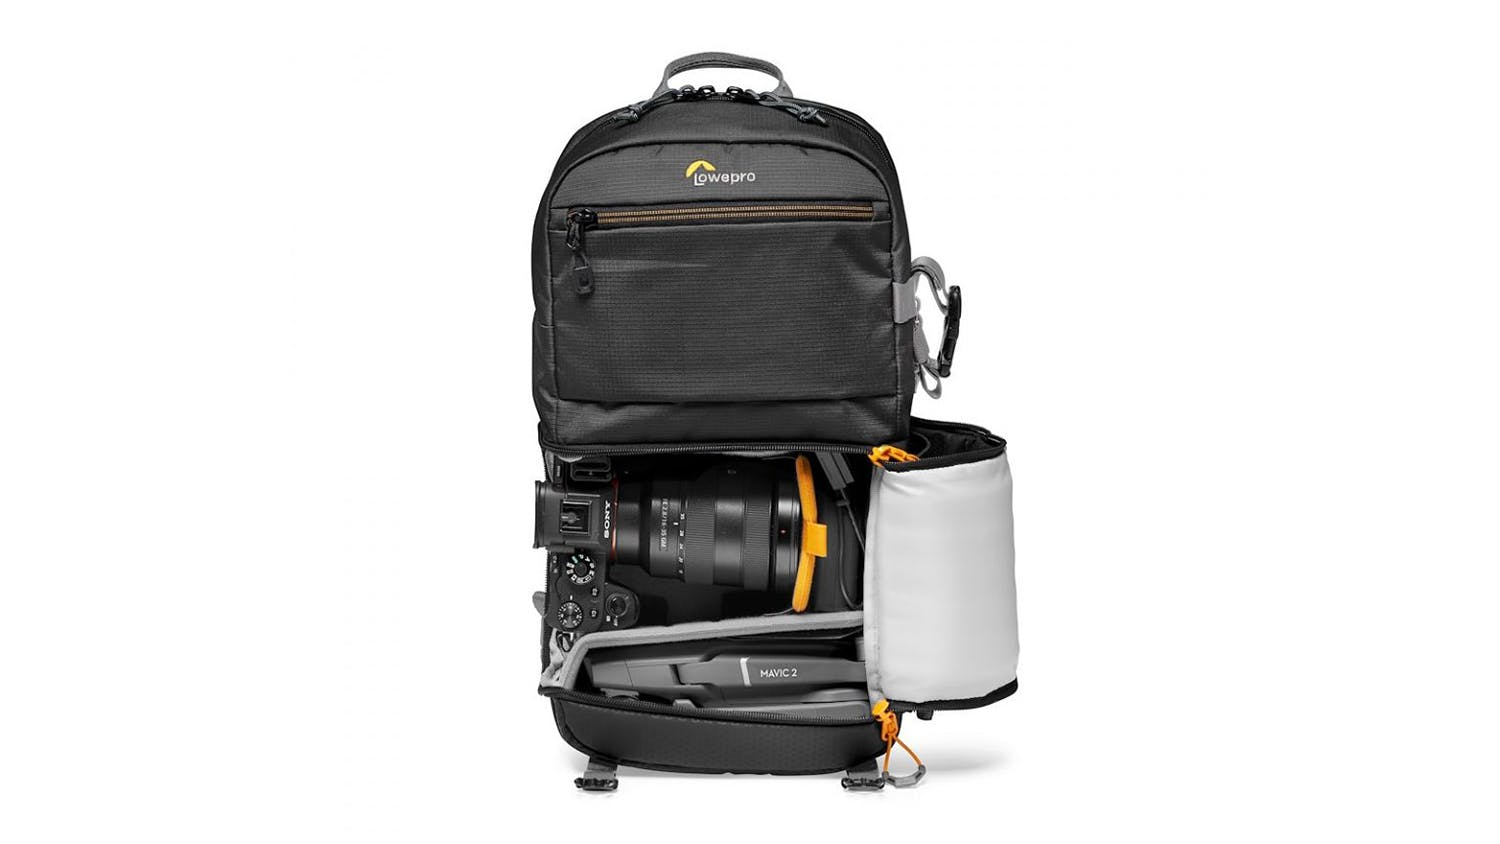 Lowepro Slingshot SL 250 AW III Camera Bag